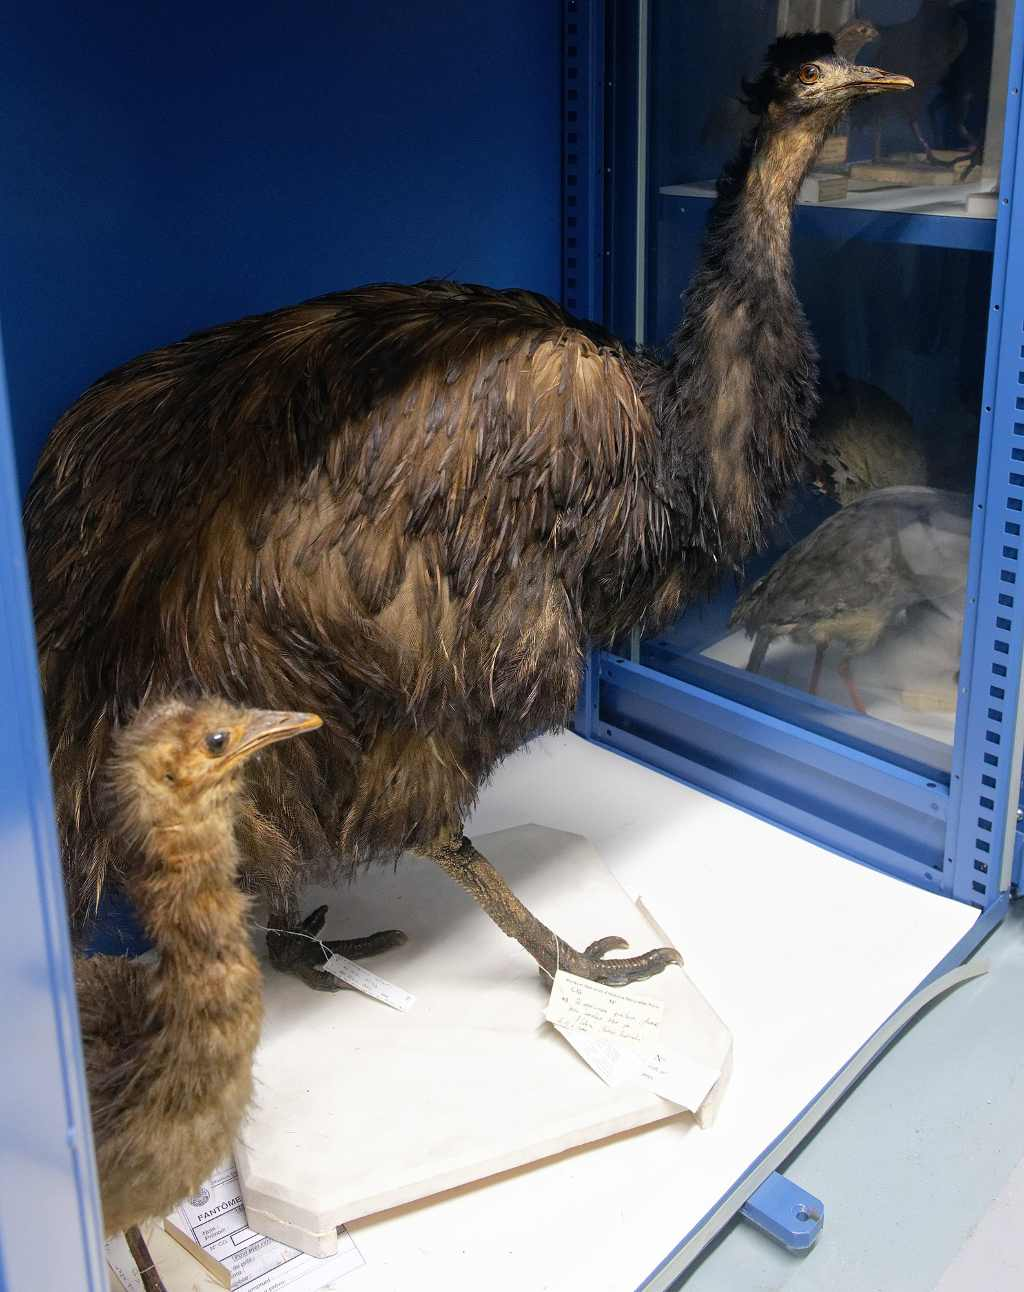 Kings Island Emu (Dromais novaholandia Minor) in the collections of the Museum of Natural History of France.  Image Credit: Wikipedia Commons / Mary-Lon Toy Palmart